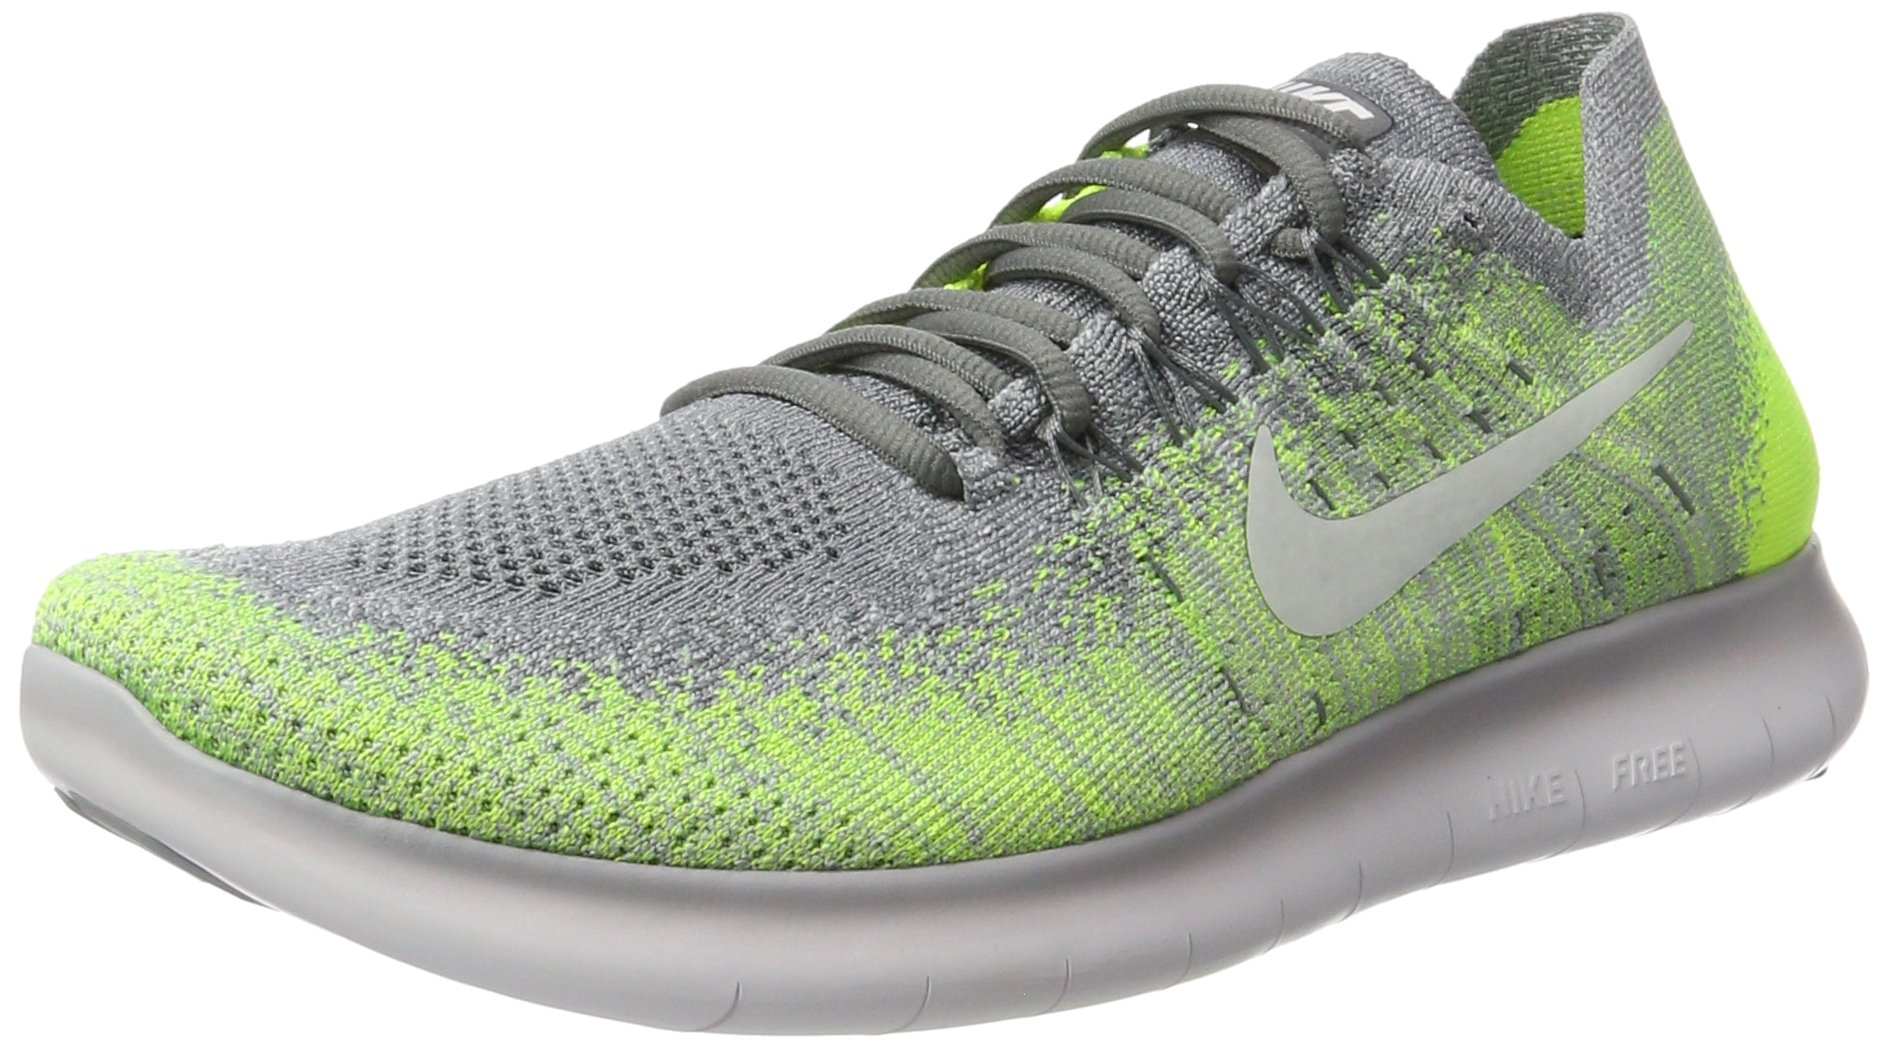 Men's Nike Free RN Flyknit 2017 Running Shoe Size 9.5 (COOL GREY/WHITE-WOLF GREY-VOLT) by NIKE